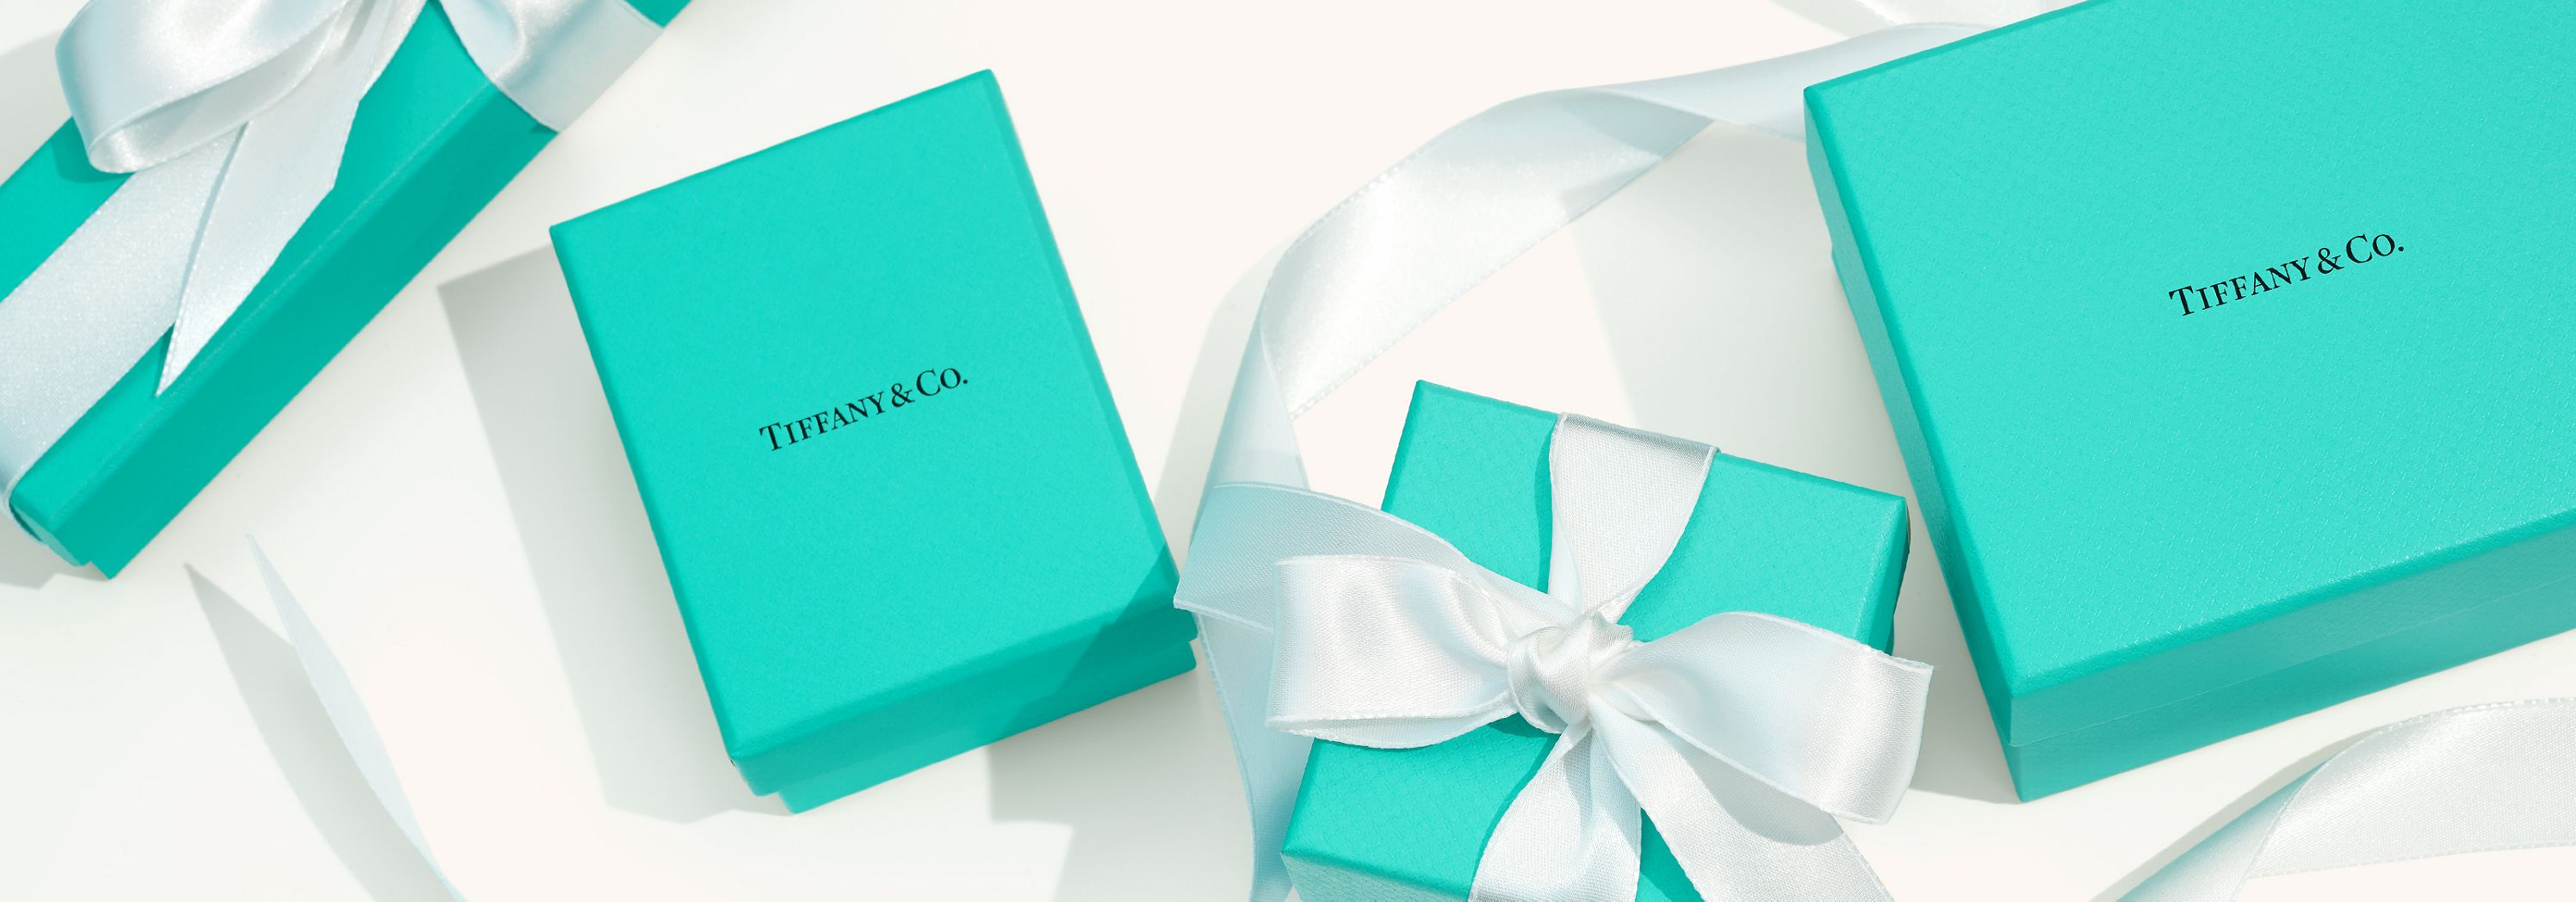 The World of Tiffany